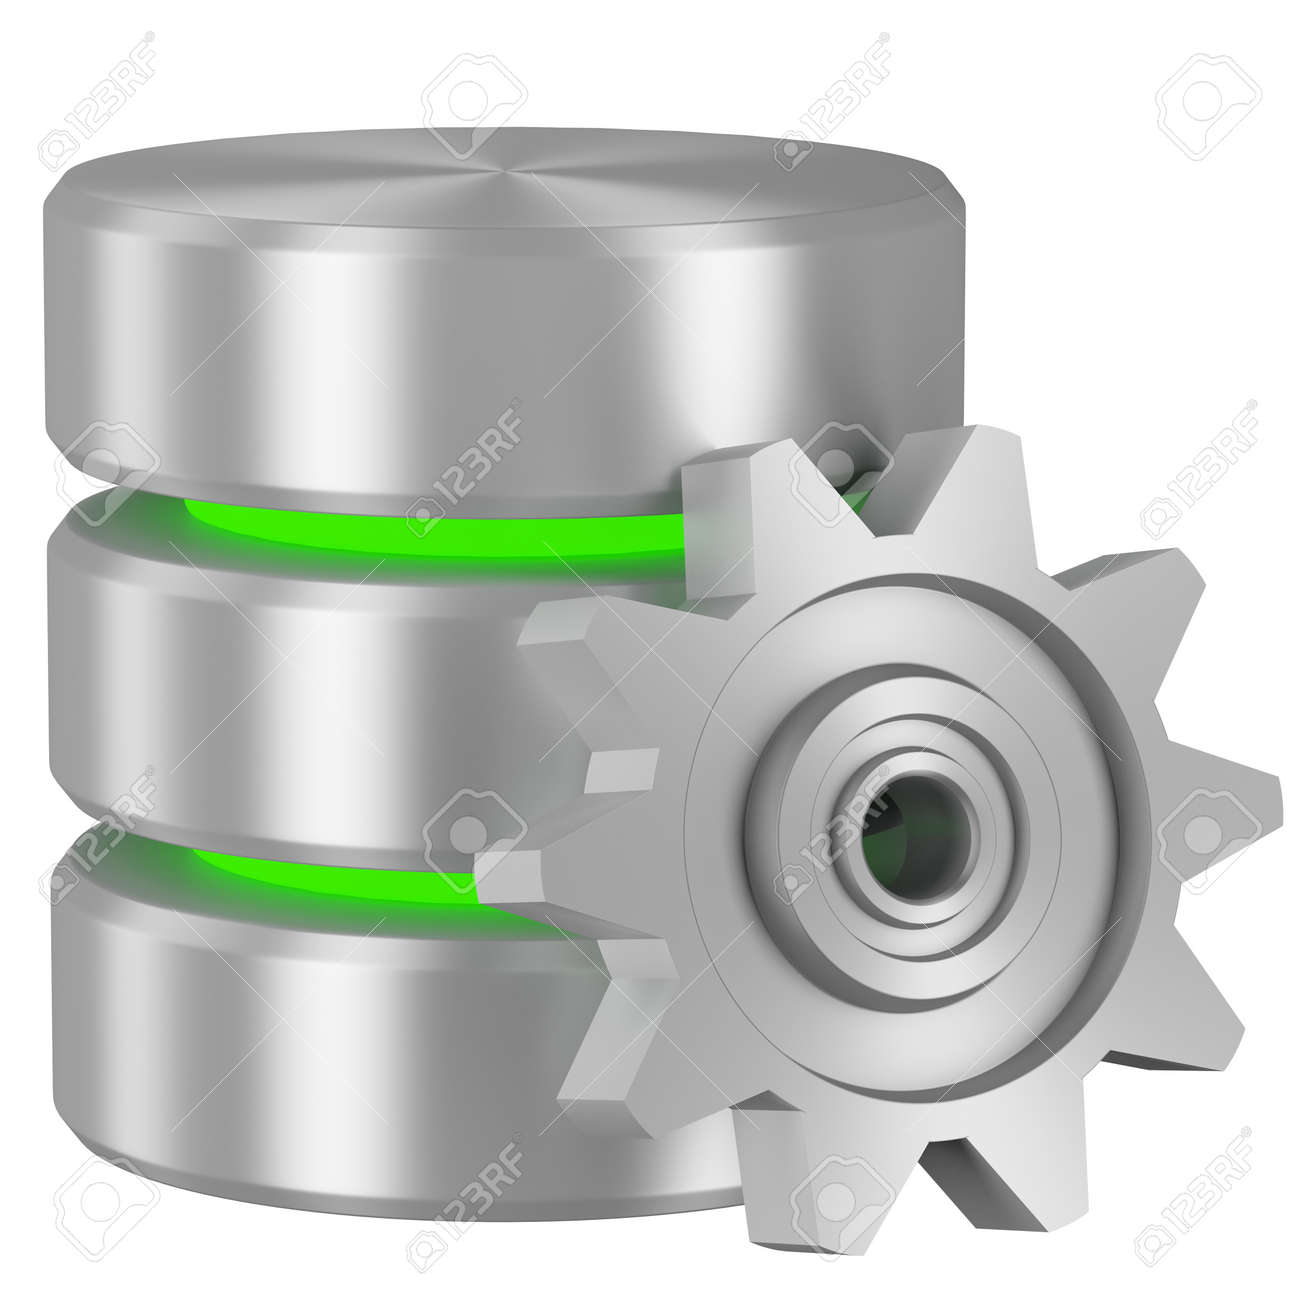 Data processing concept icon: Database with green elements and metal cogwheel isolated on white background - 18684281